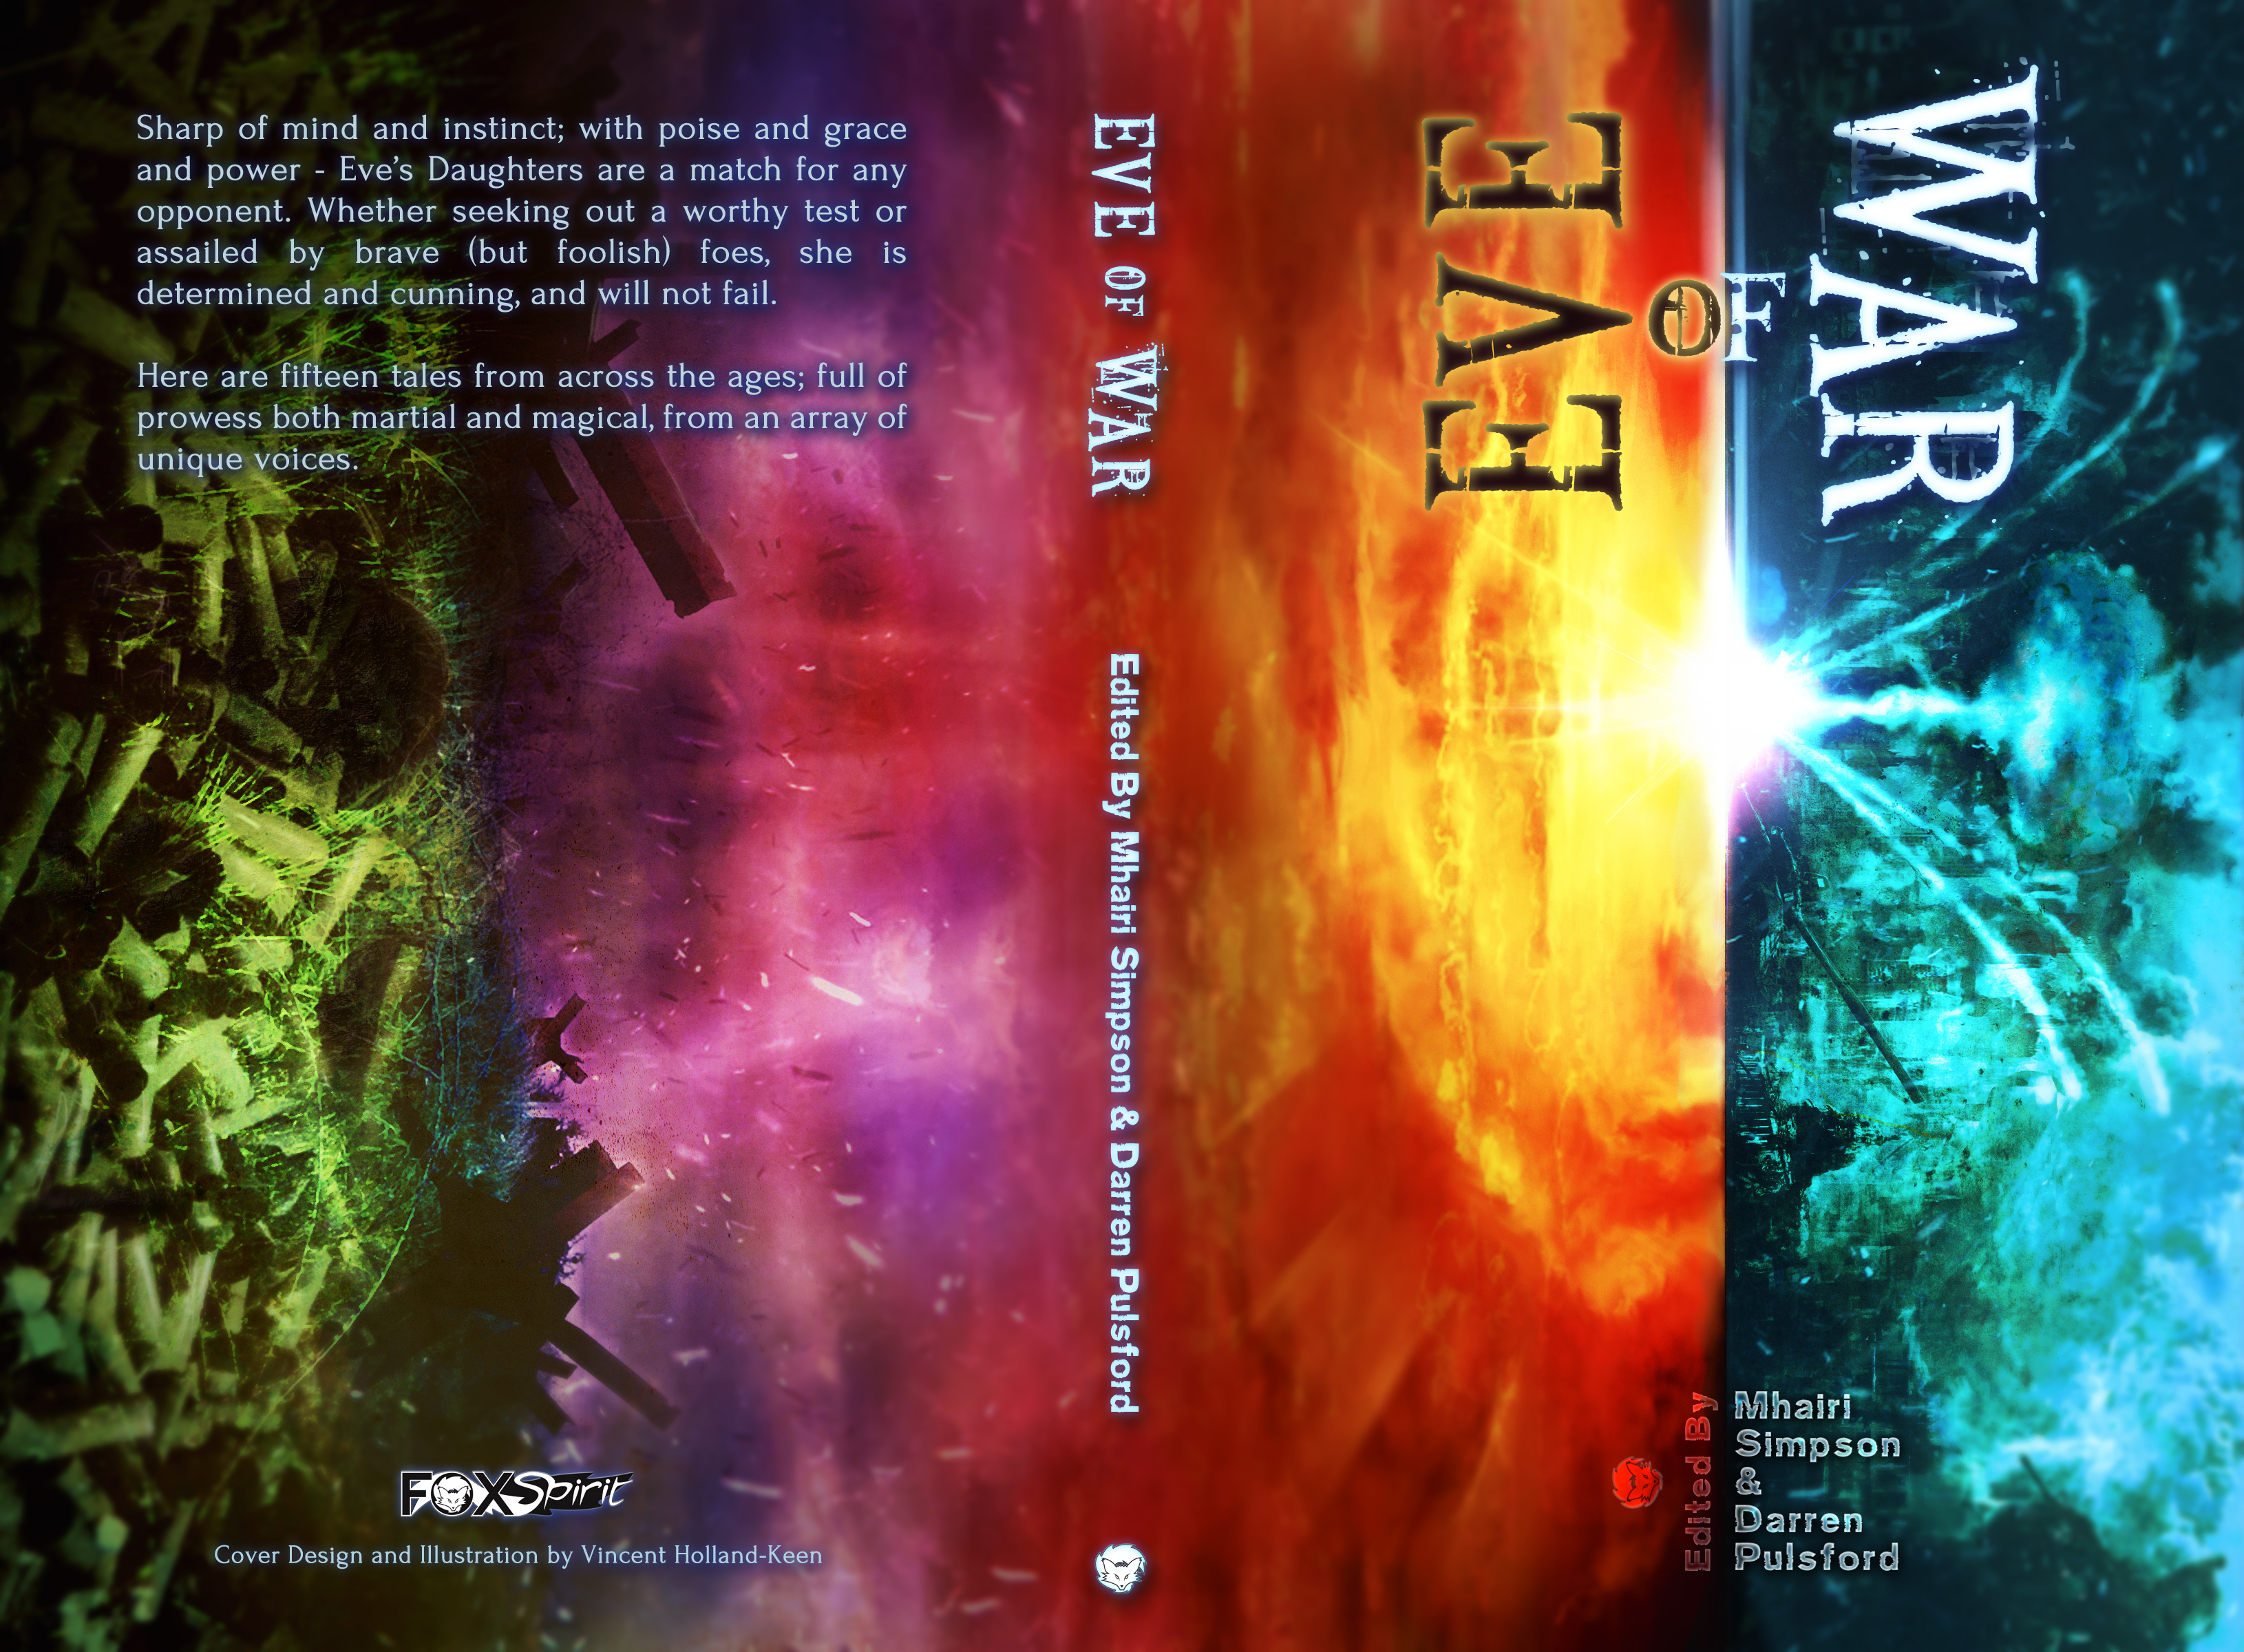 Eve of War edited by Darren Pulsford & Mhairi Simpson